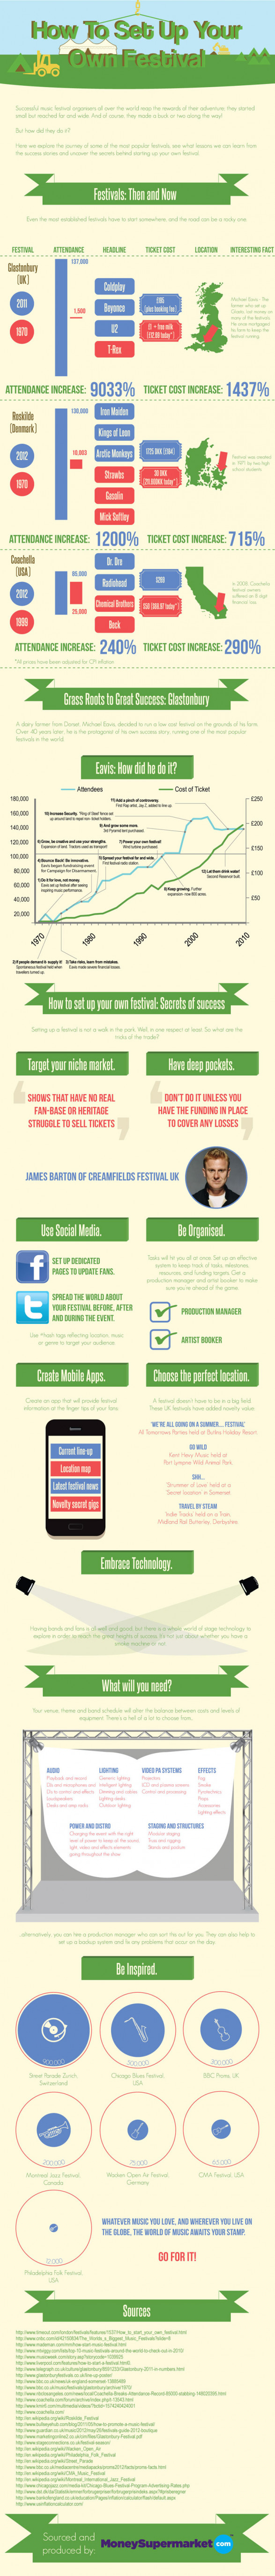 How to Set Up Your Own Festival